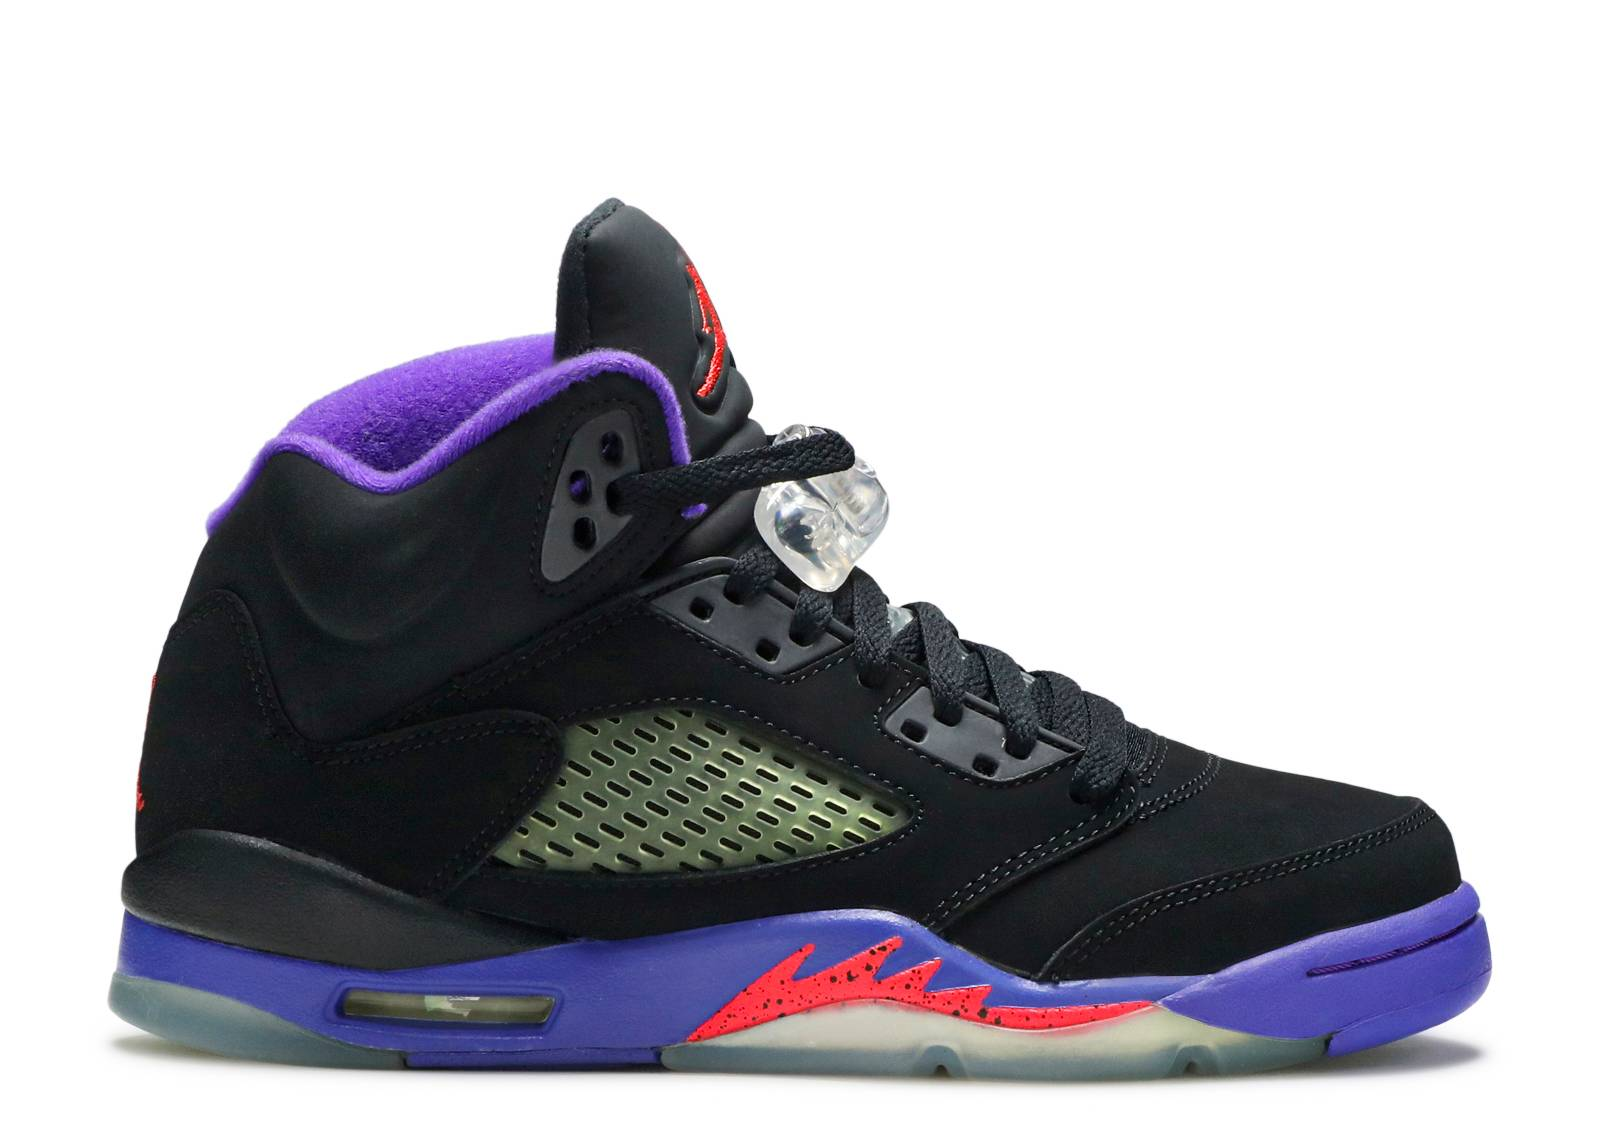 Nike Womens Air Jordan 5 Teal-Pink-Purple Sneakers  3126782